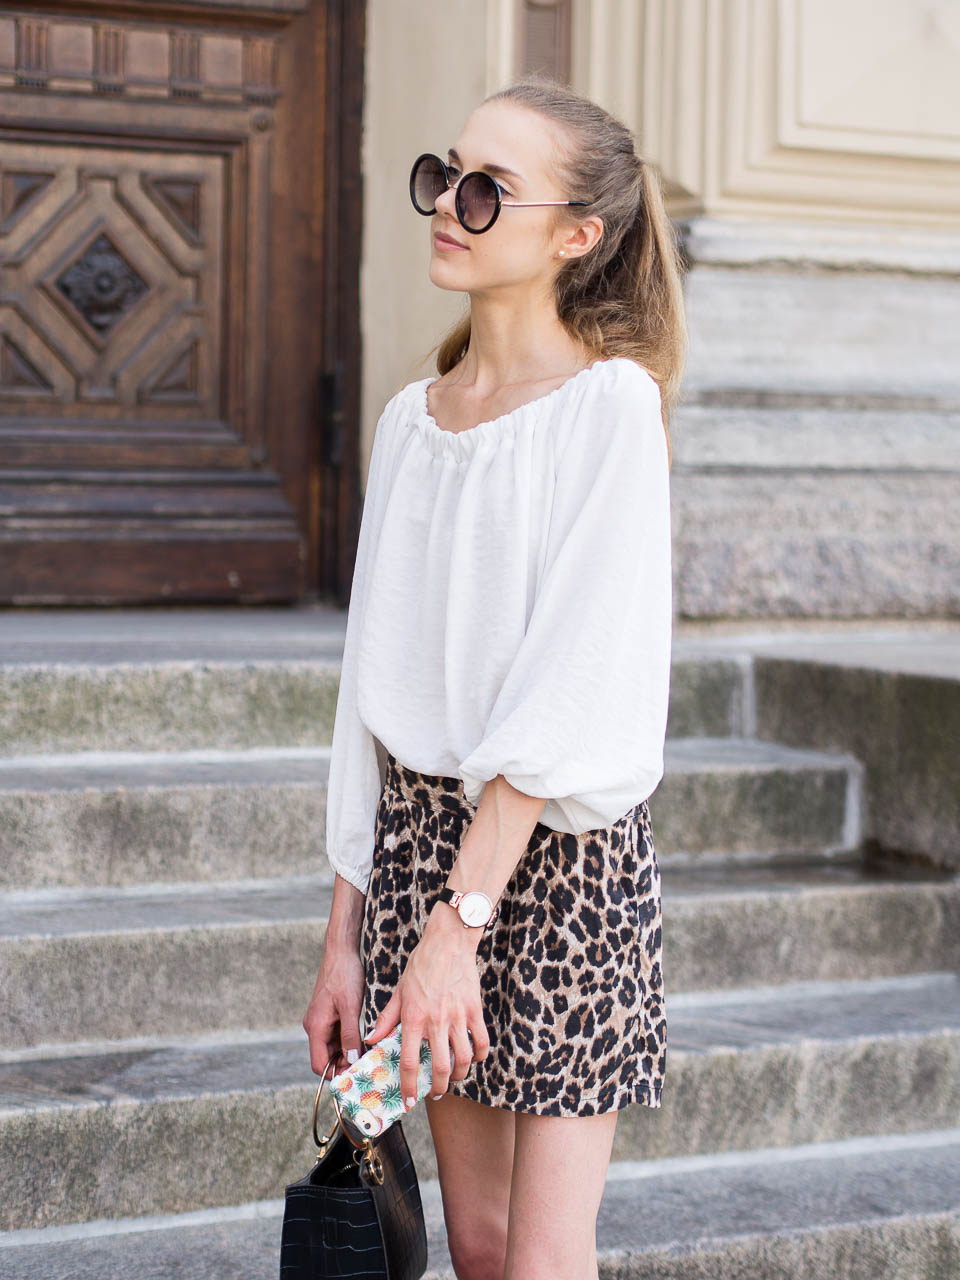 how-to-wear-animal-prints-fashion-blogger-outfit-inspiration